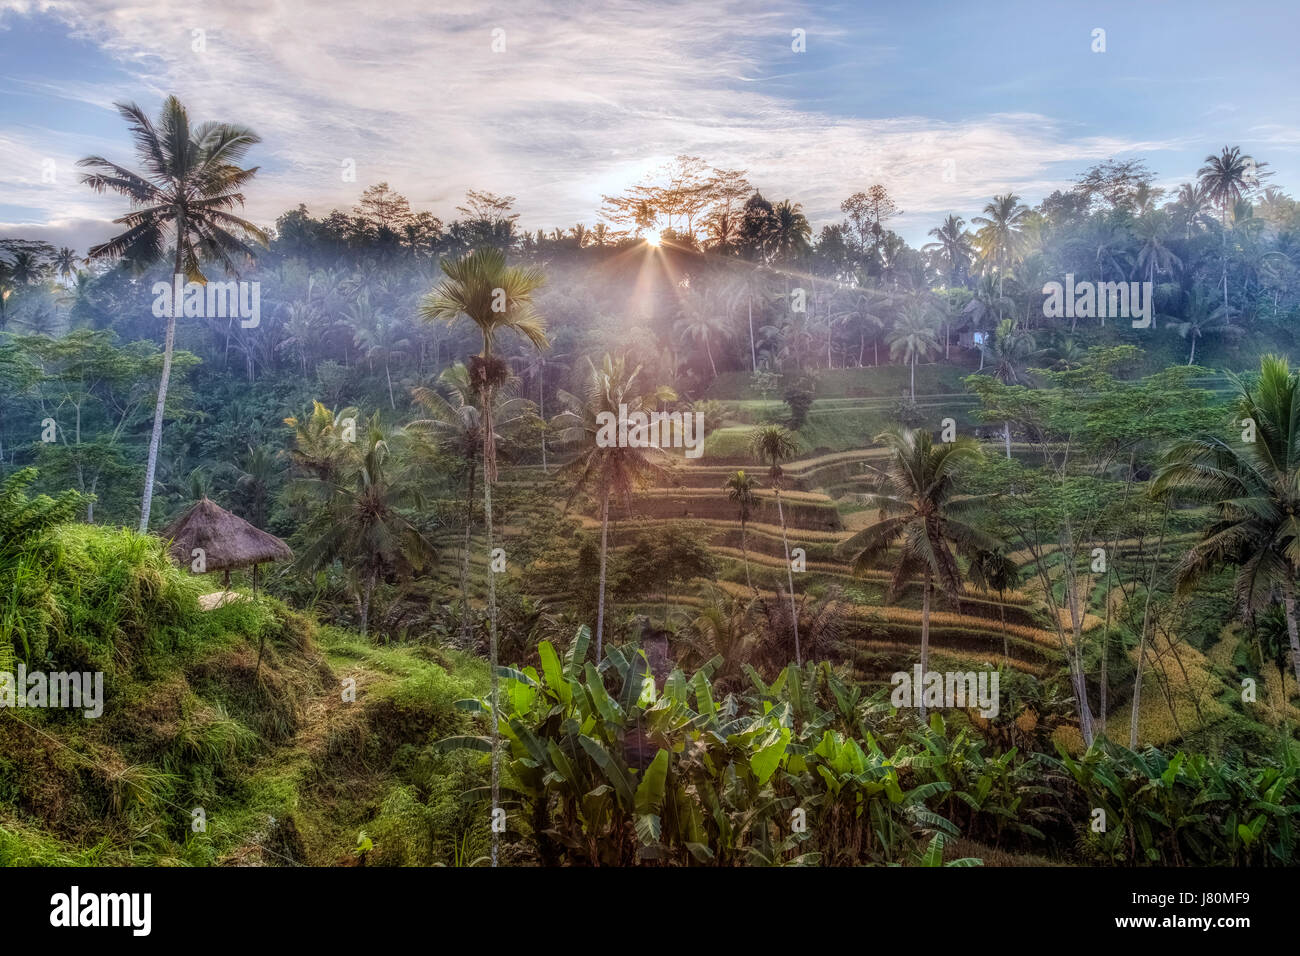 Tegalalang, Rice Fields, Ubud, Bali, Indonesia, Asia - Stock Image